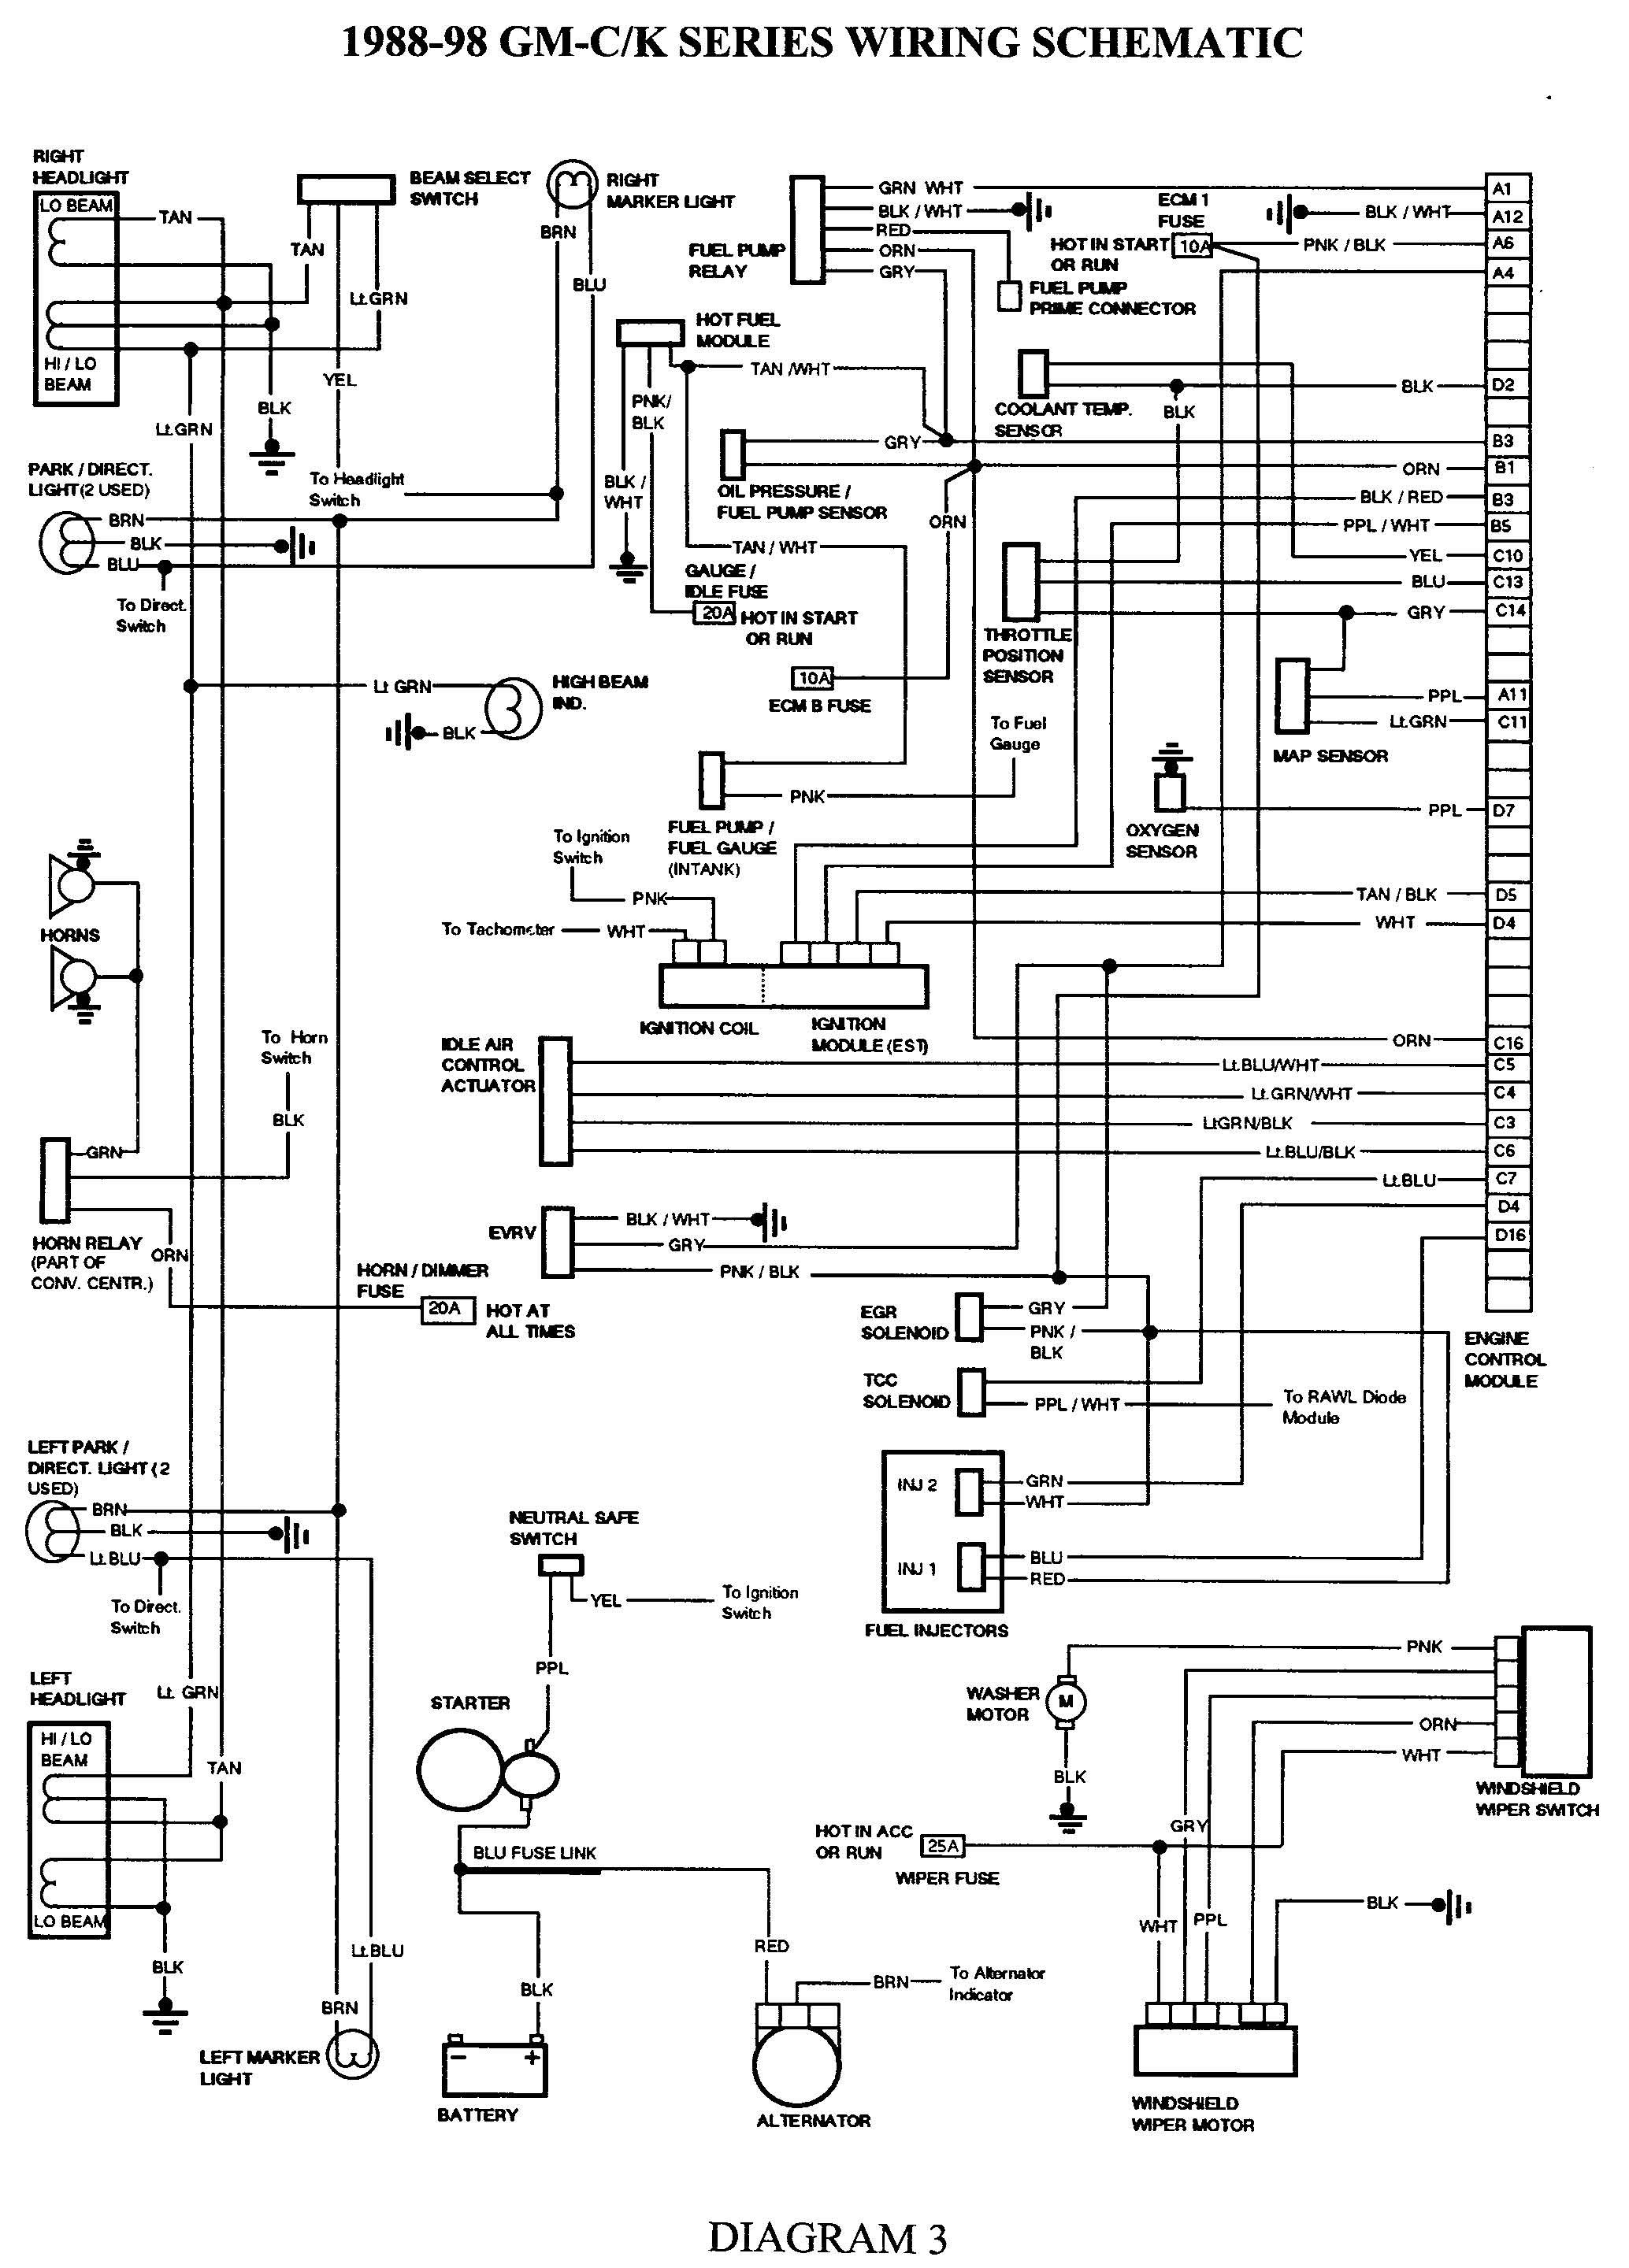 small resolution of gmc truck wiring diagrams on gm wiring harness diagram 88 98 kc 1984 gmc truck wiring diagram gmc general trucks wiring diagram